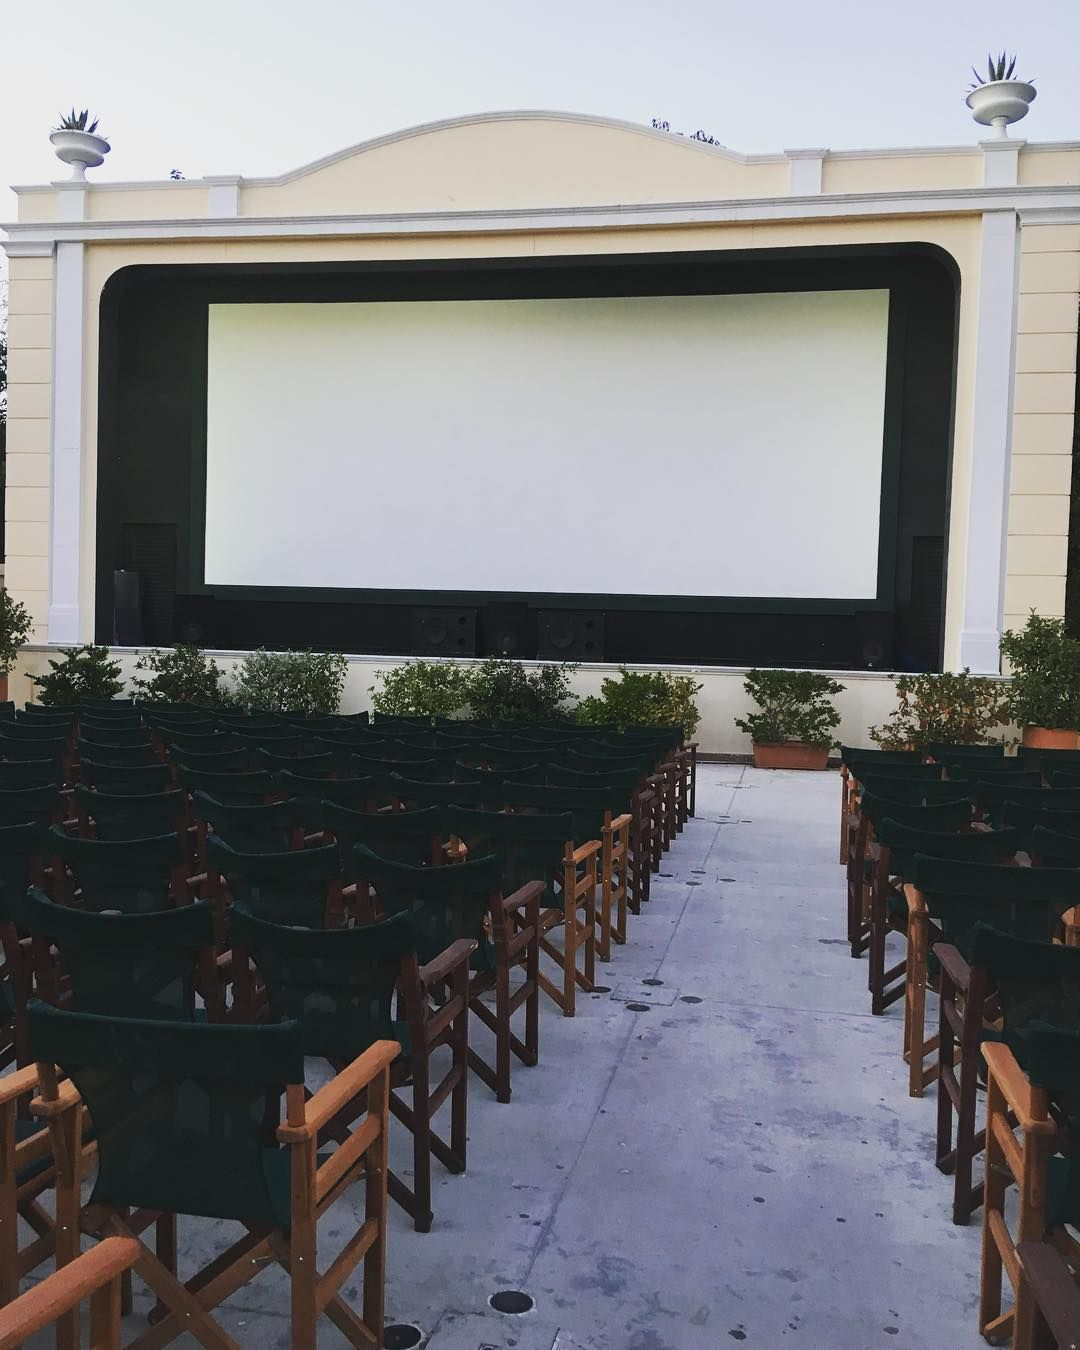 Open air cinema! Wonderful night in an empty city! athens